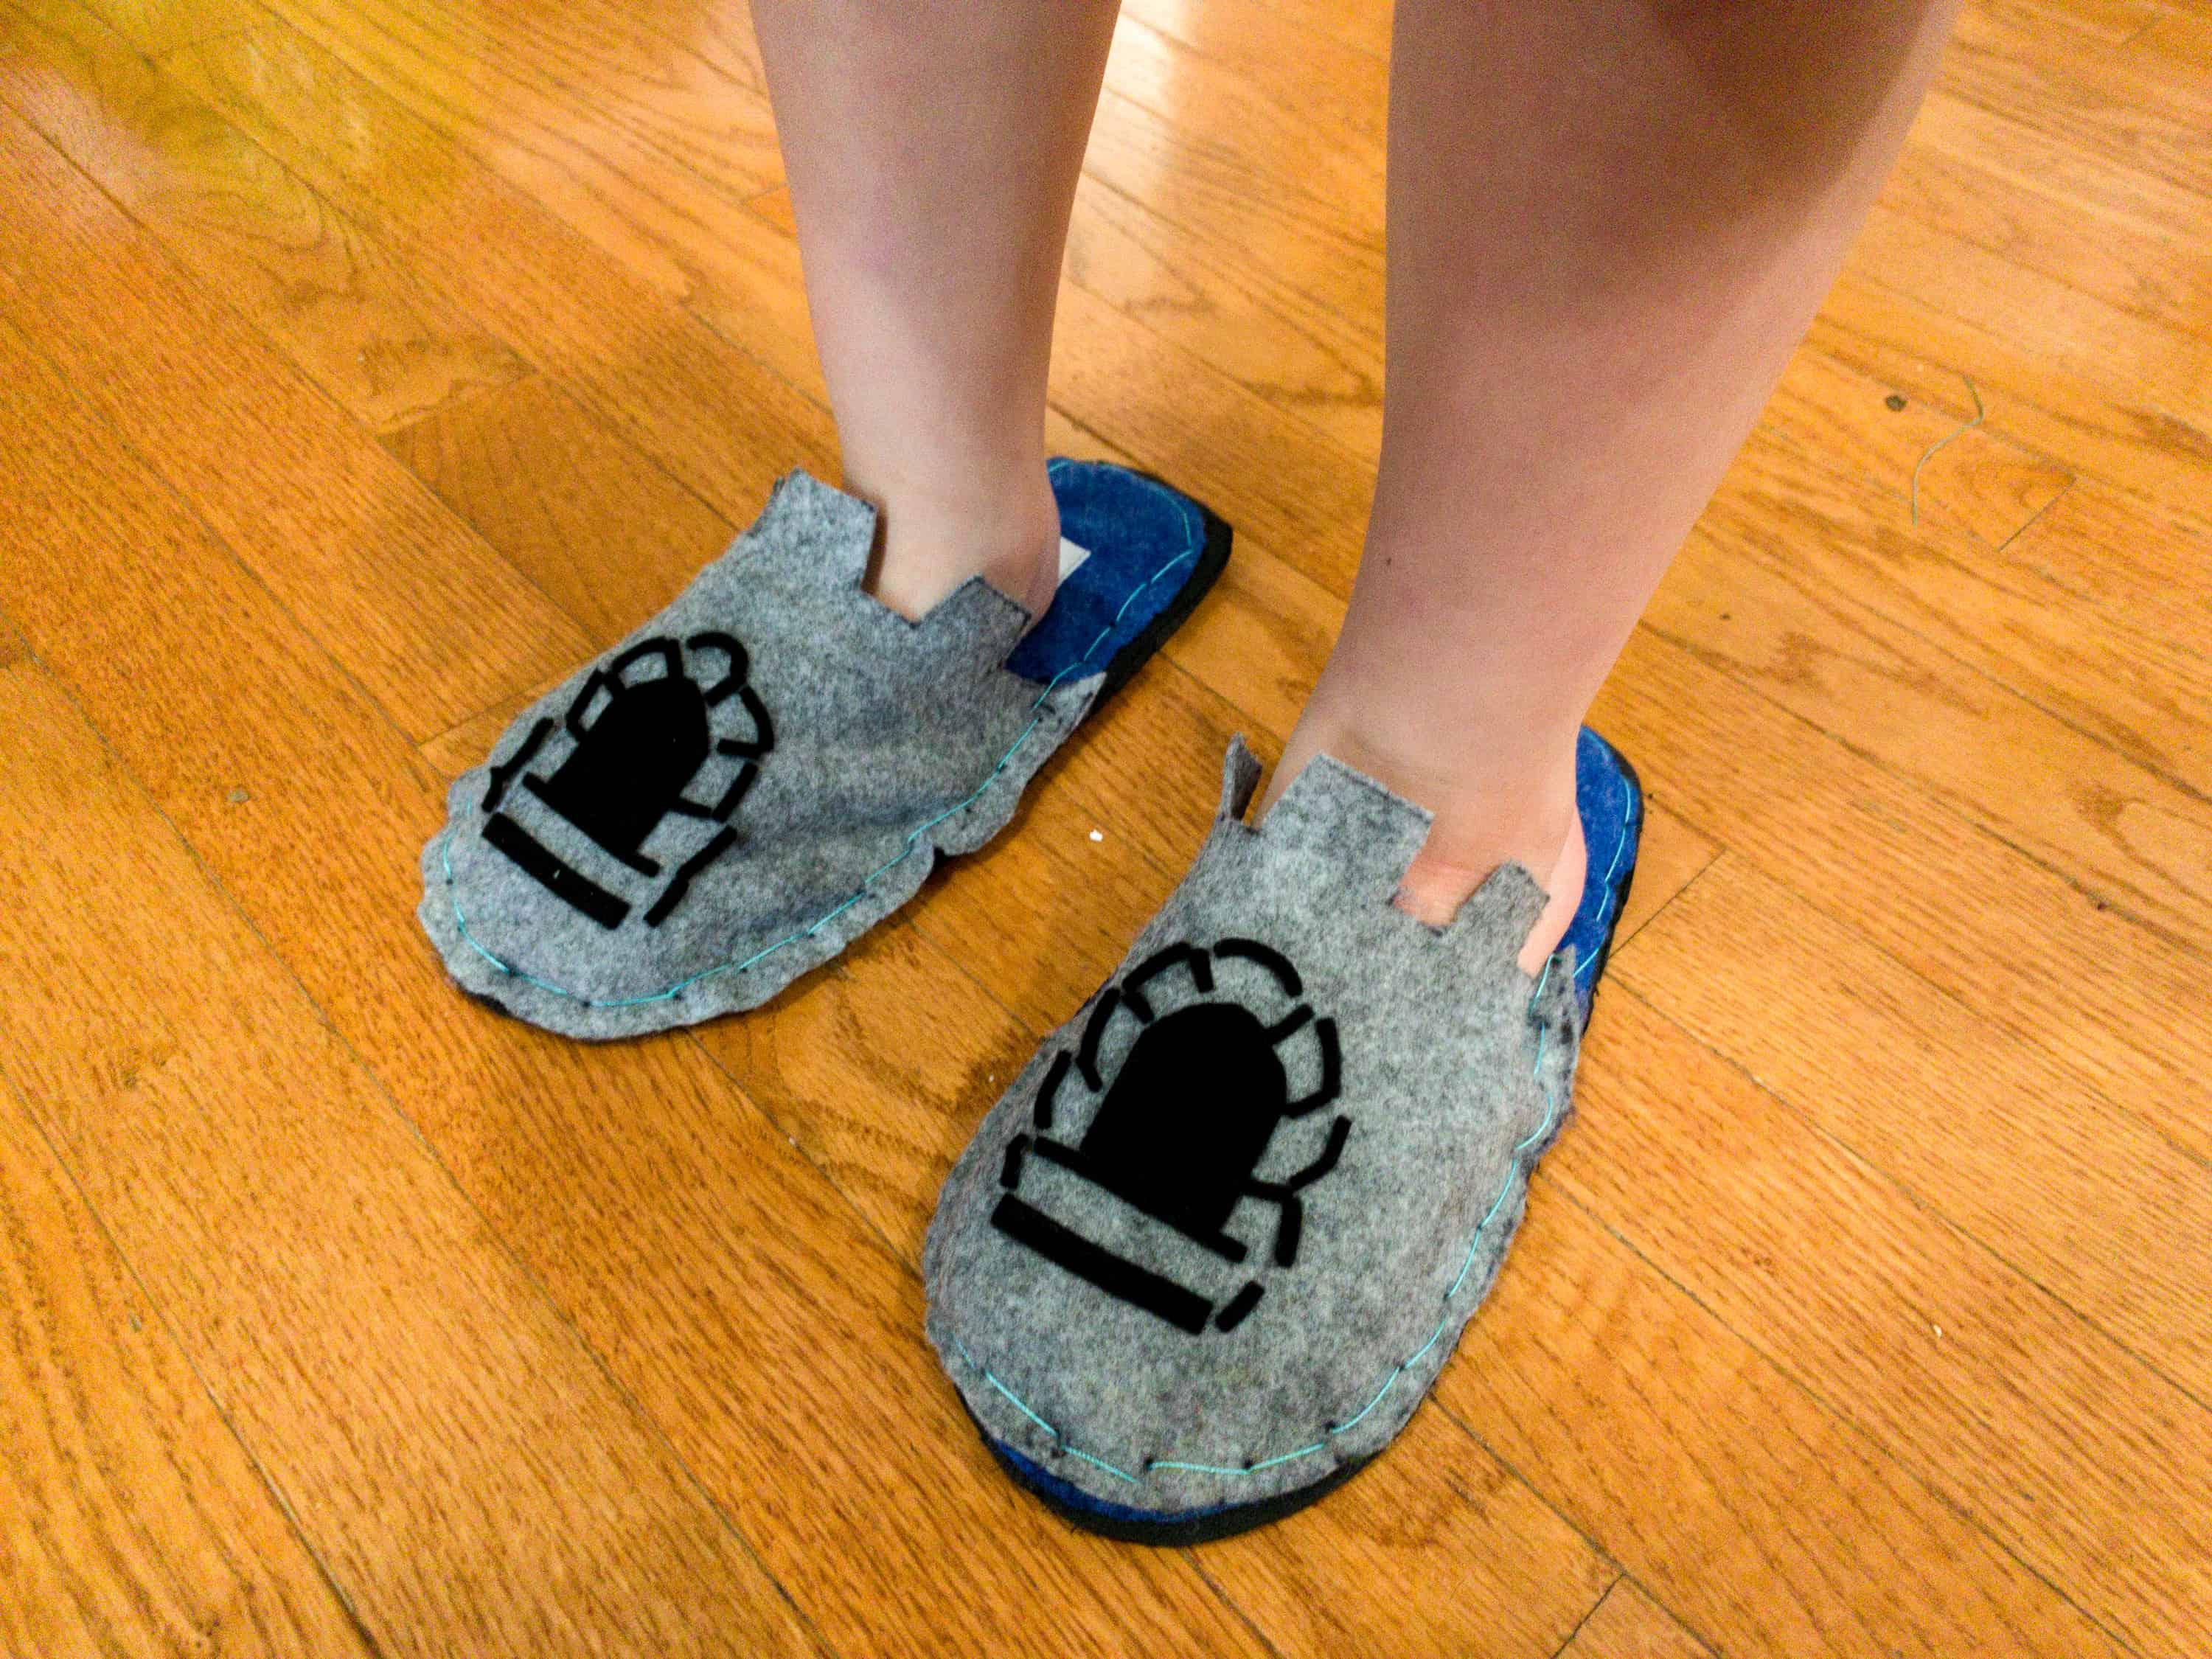 Doodle Crate September 2018 Subscription Box Review & Coupon – HANDCRAFTED SLIPPERS